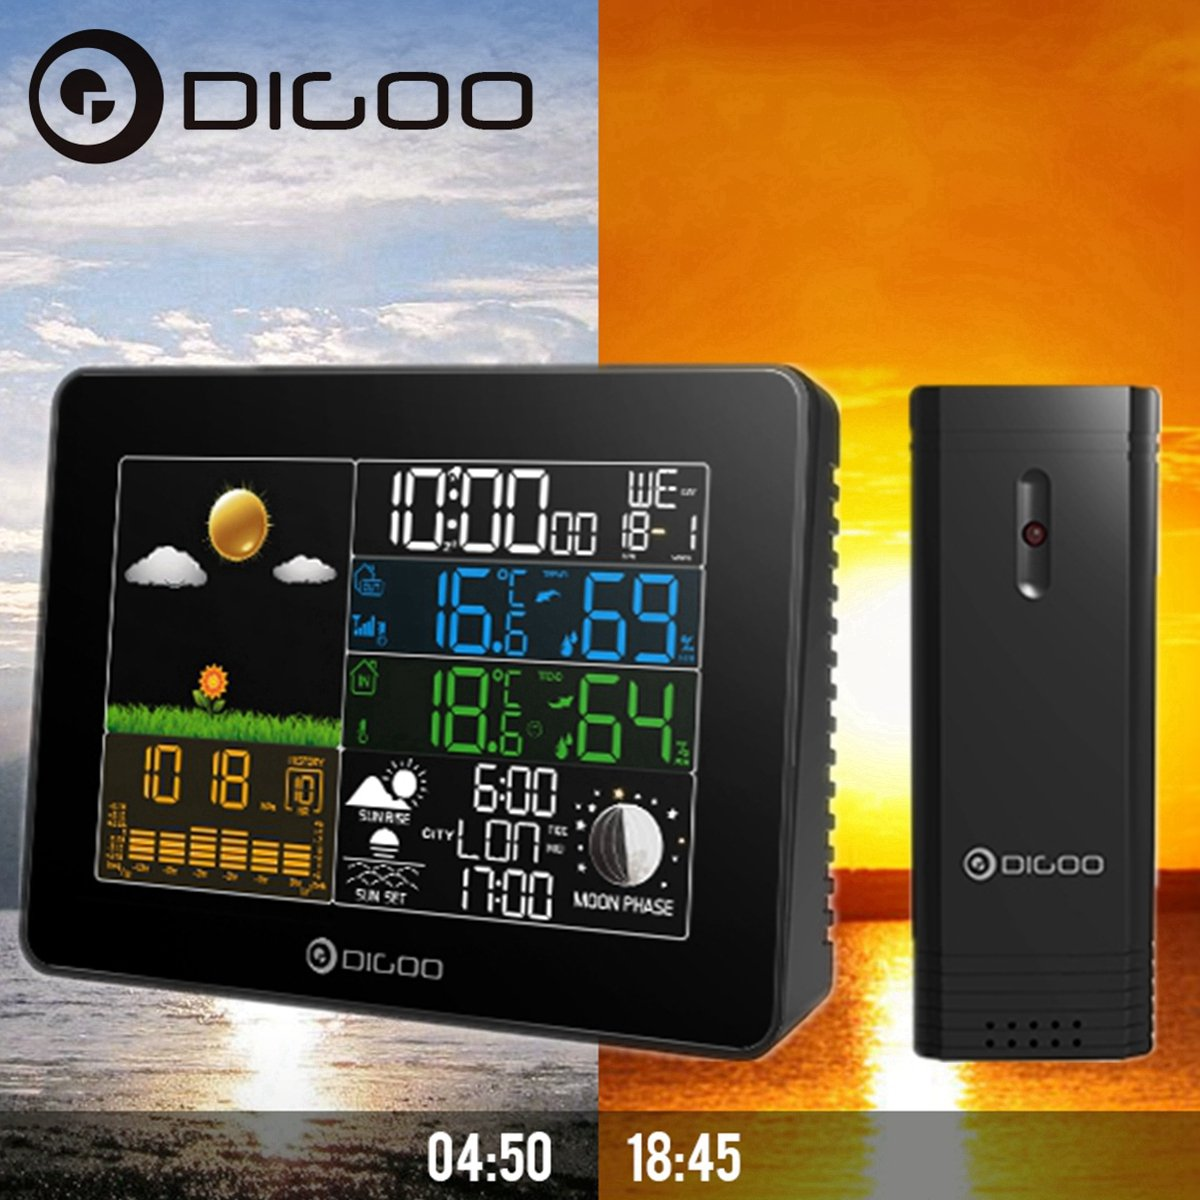 Digoo Wireless Full Color Hygrometer Thermometer Digital Weather Forecast Sensor Wolifui DIGOOWolifui158